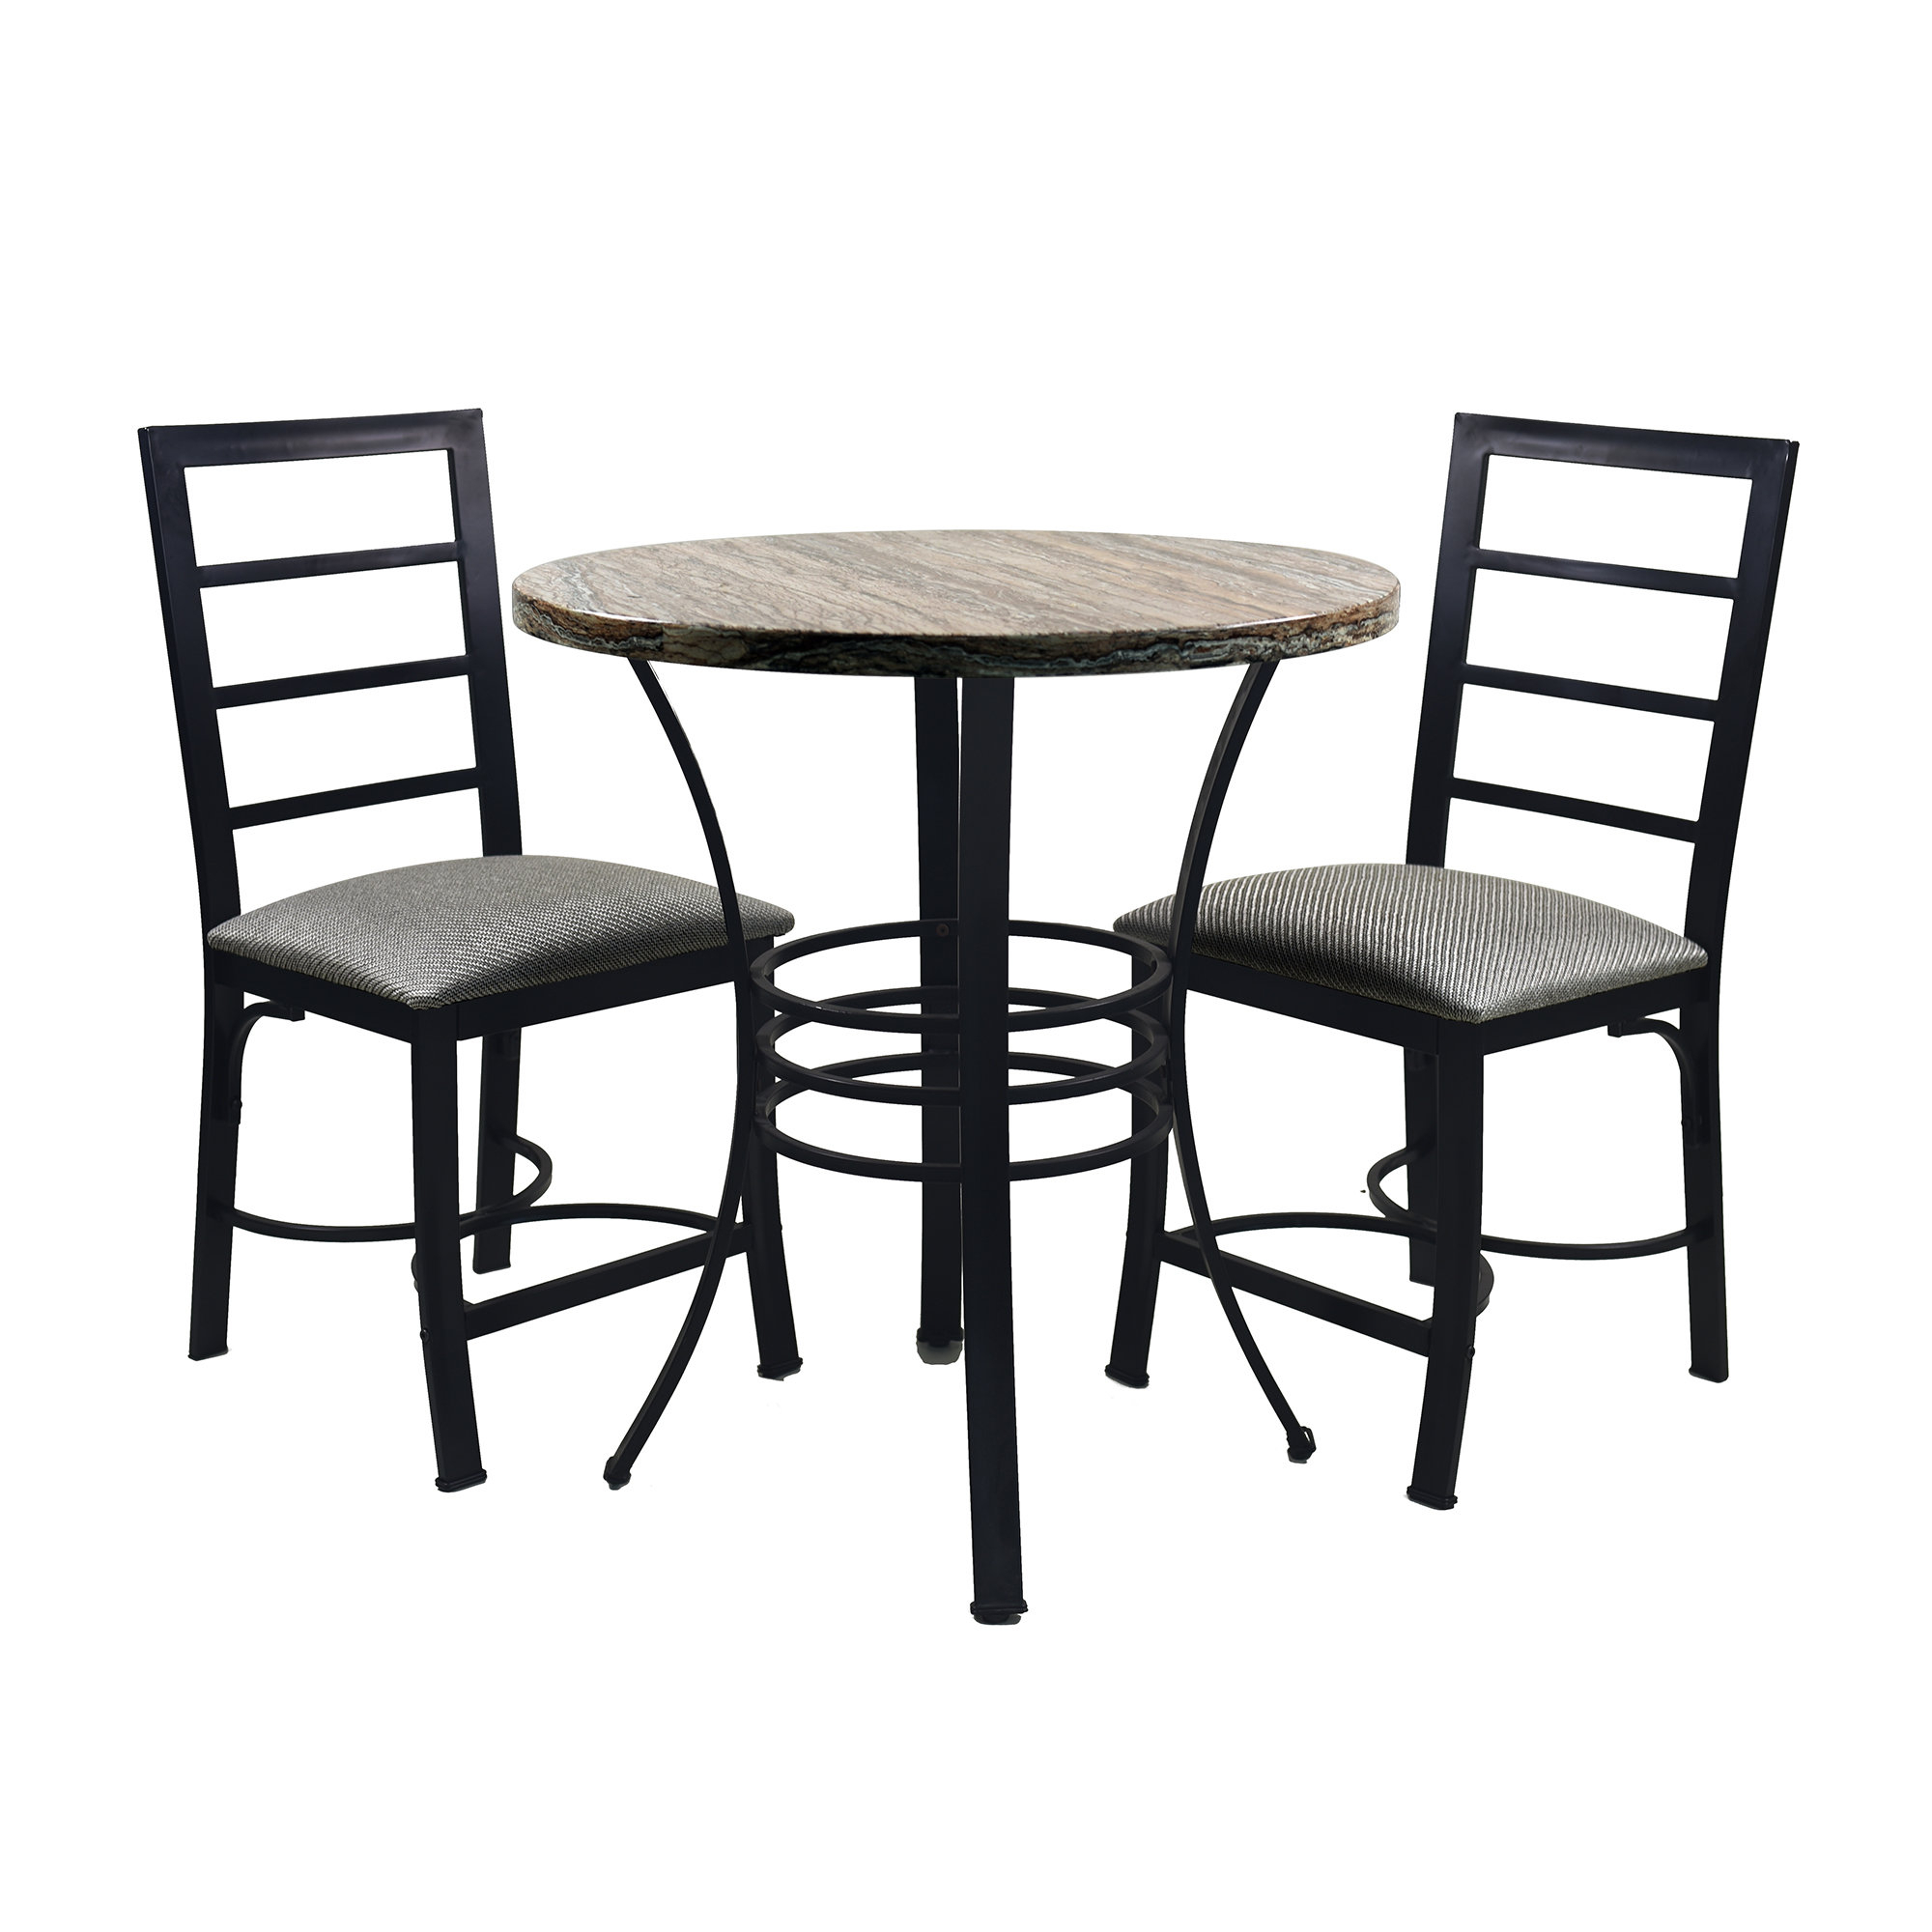 Kinsler 3 Piece Bistro Sets Throughout Most Recently Released Casillas Bistro 3 Piece Dining Set (Gallery 8 of 20)